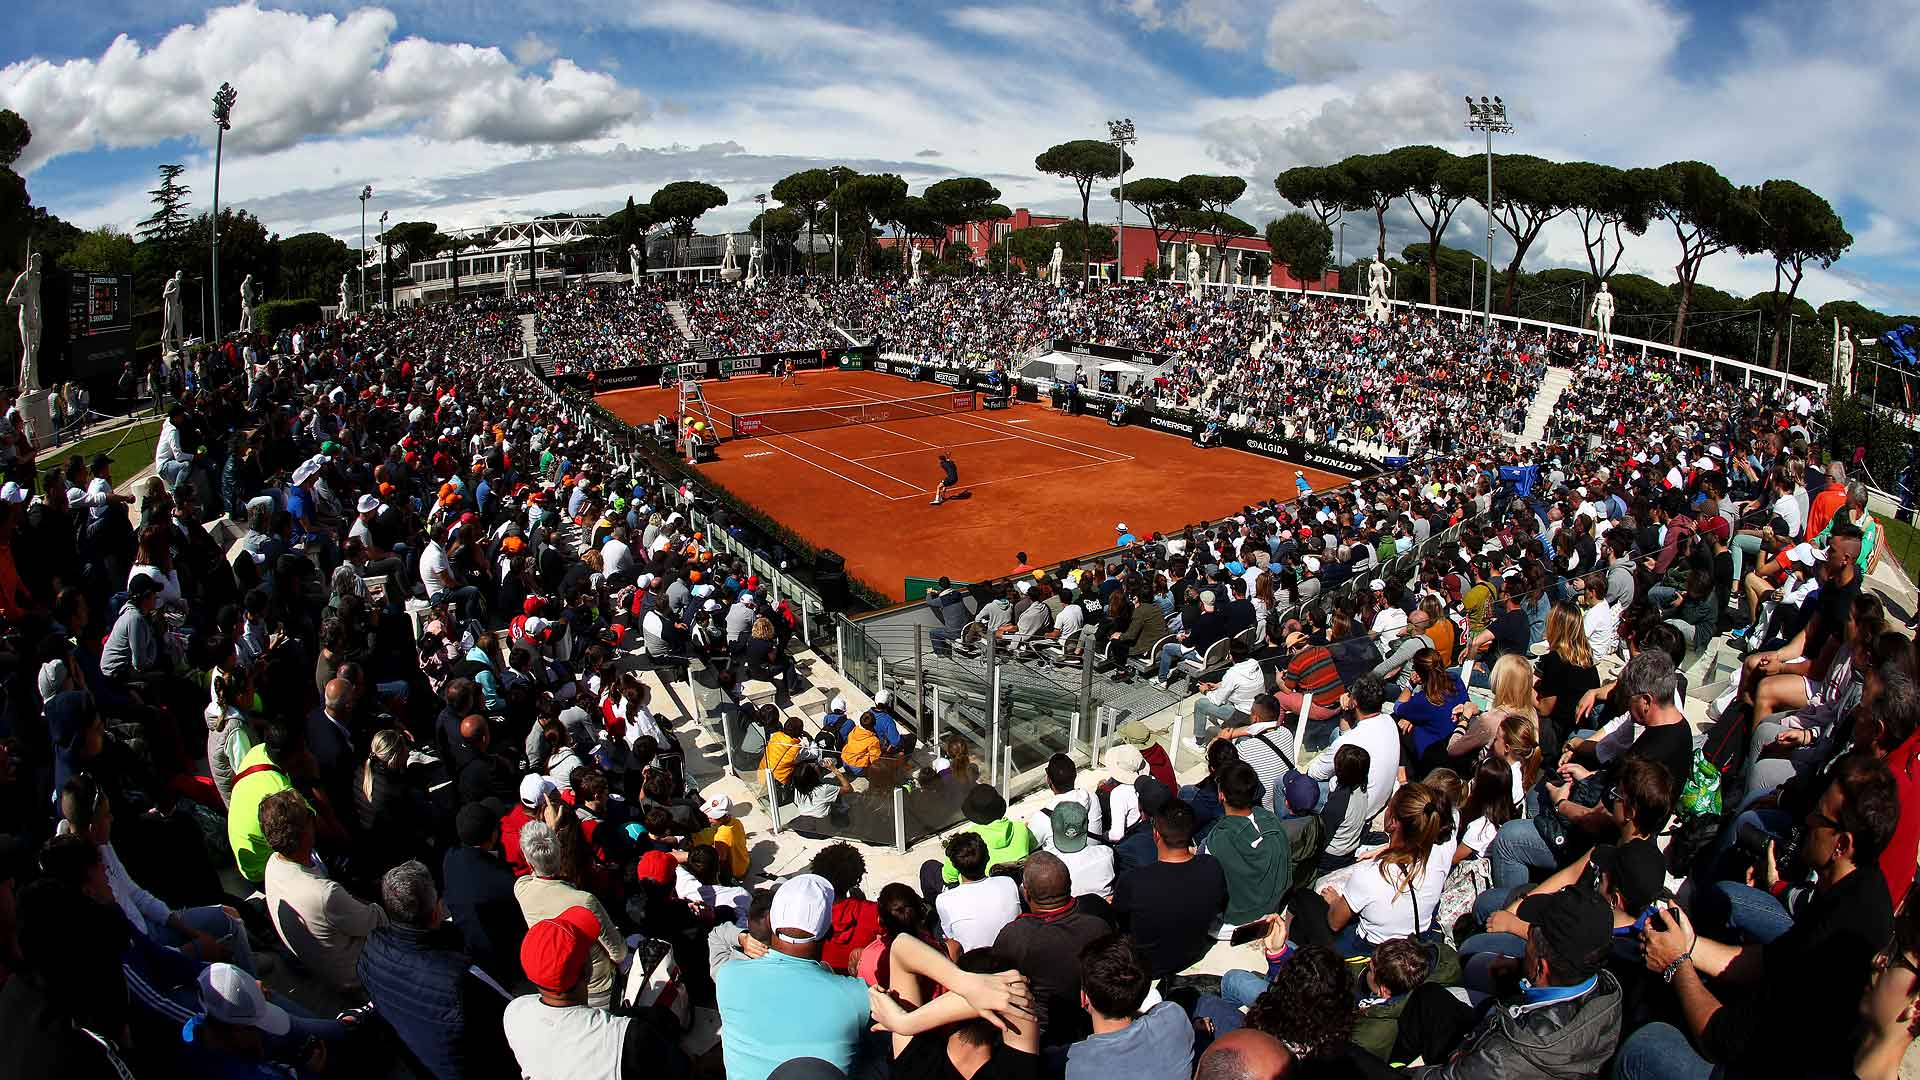 Court Pietrangeli, Rome